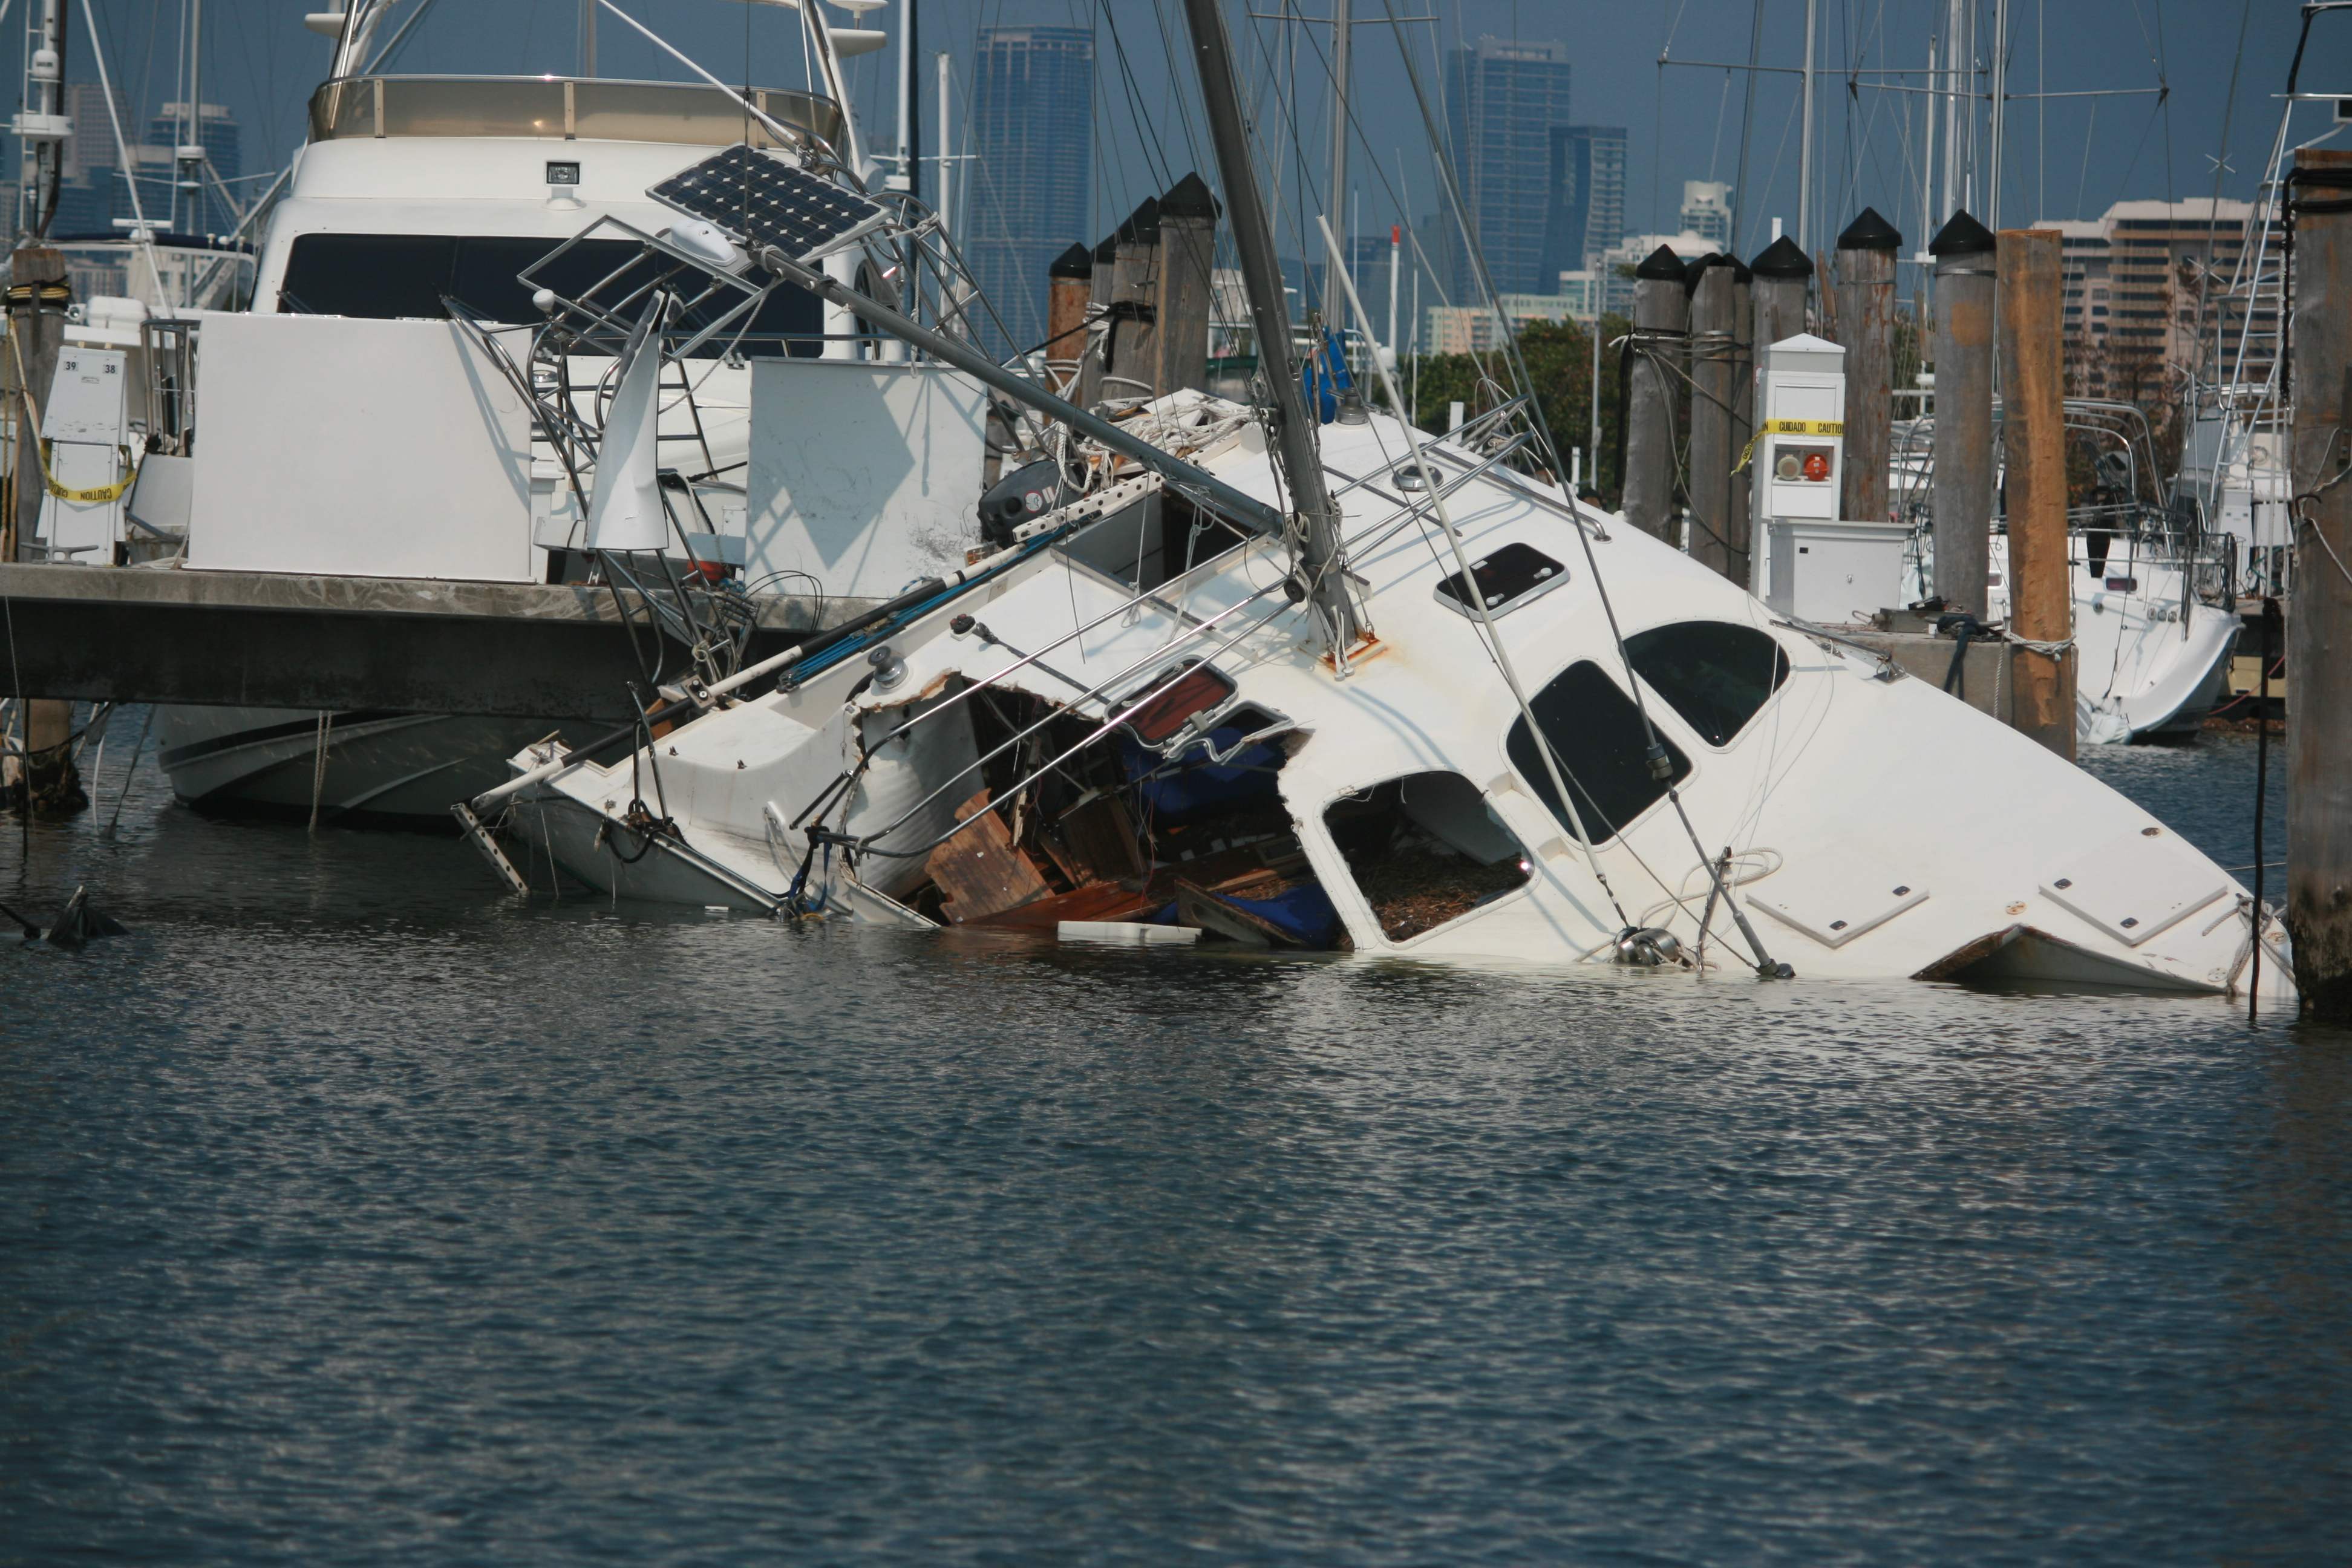 The guys cashing in on hurricane irma s boat destruction for Outboard motor salvage yard